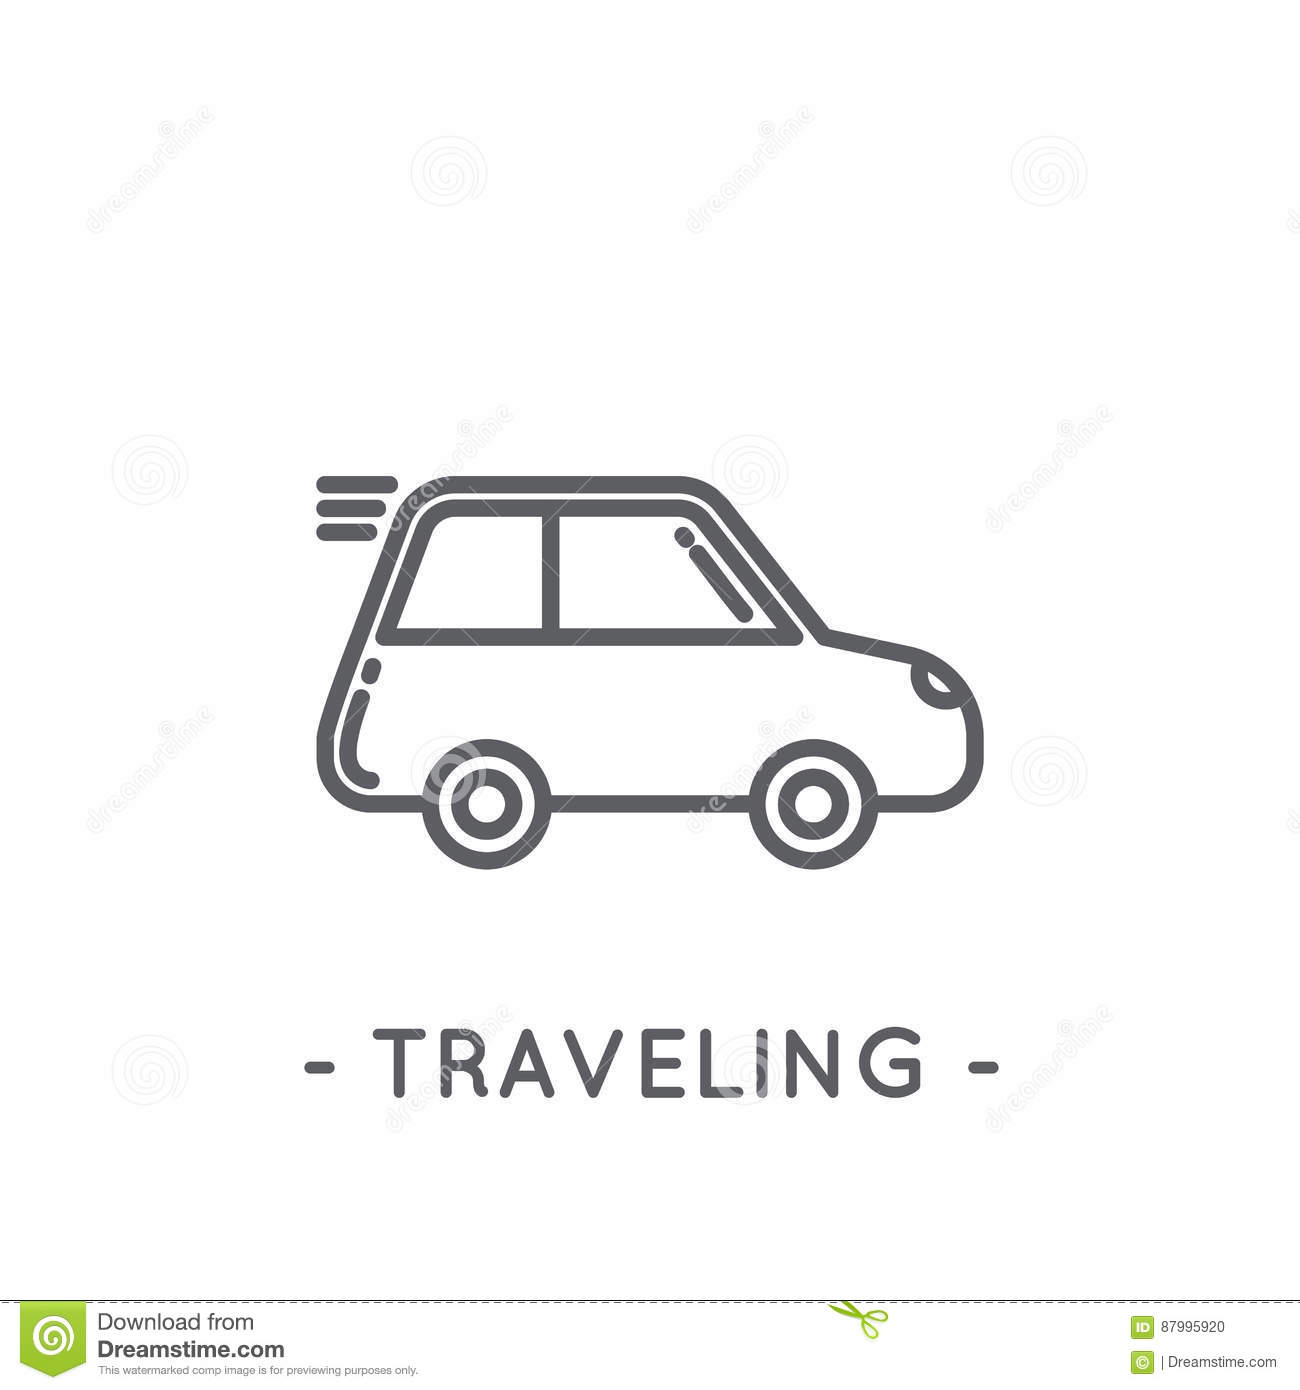 Line Black Traveling Icon On White Background Stock Vector Illustration Of Concept Bumper 87995920